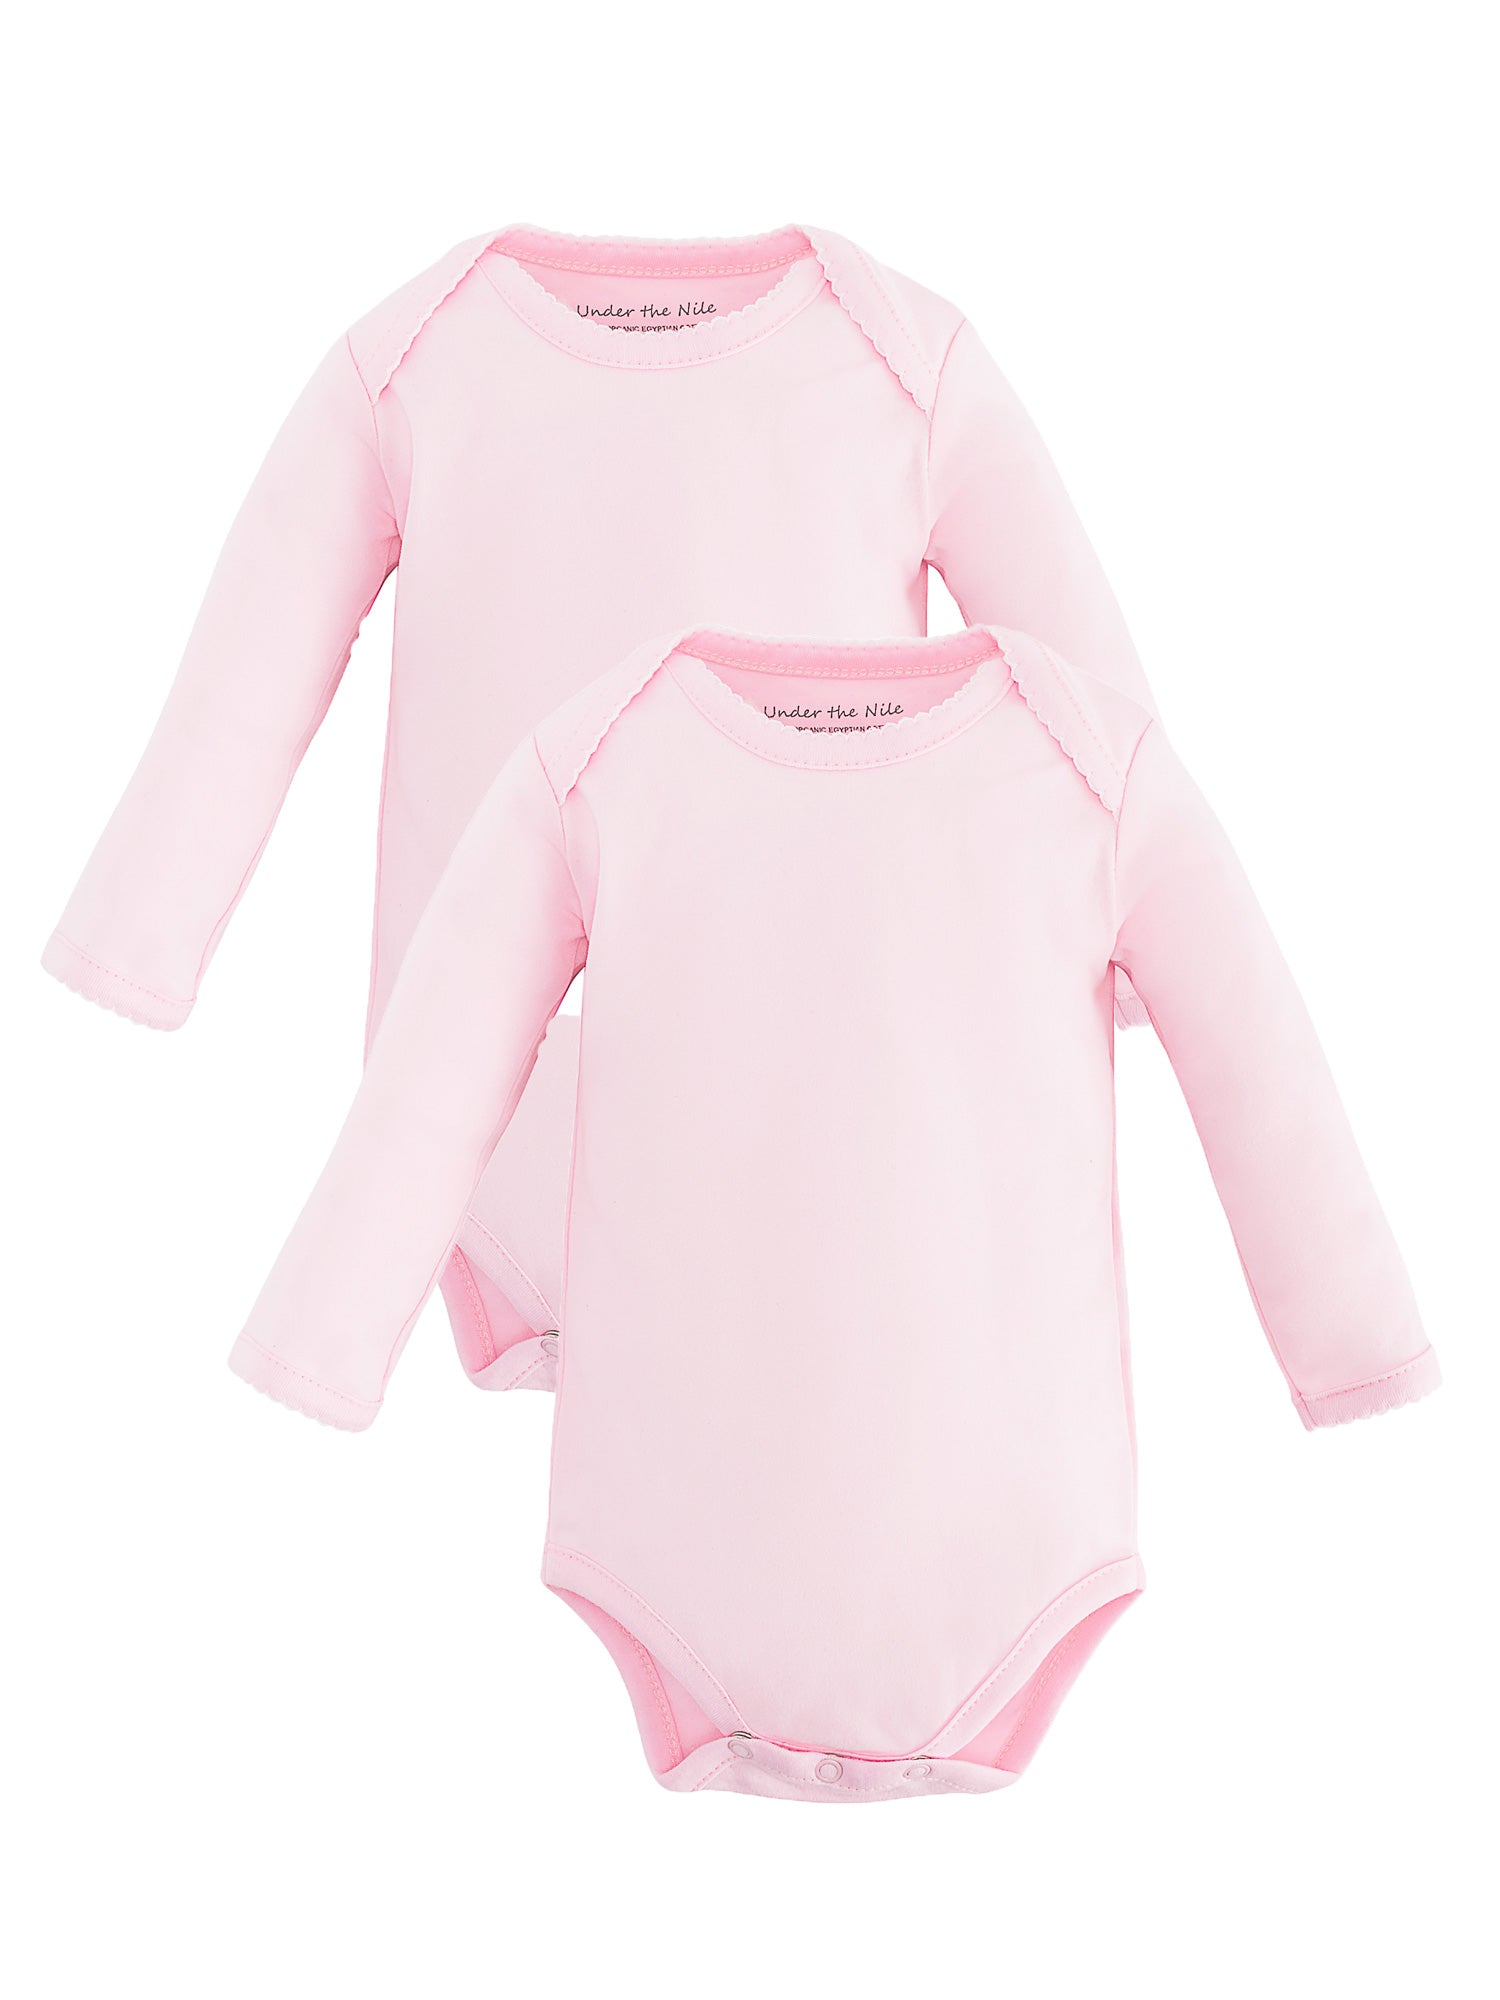 Long Sleeve Lap Shoulder Bodysuit - Pink Value Pack